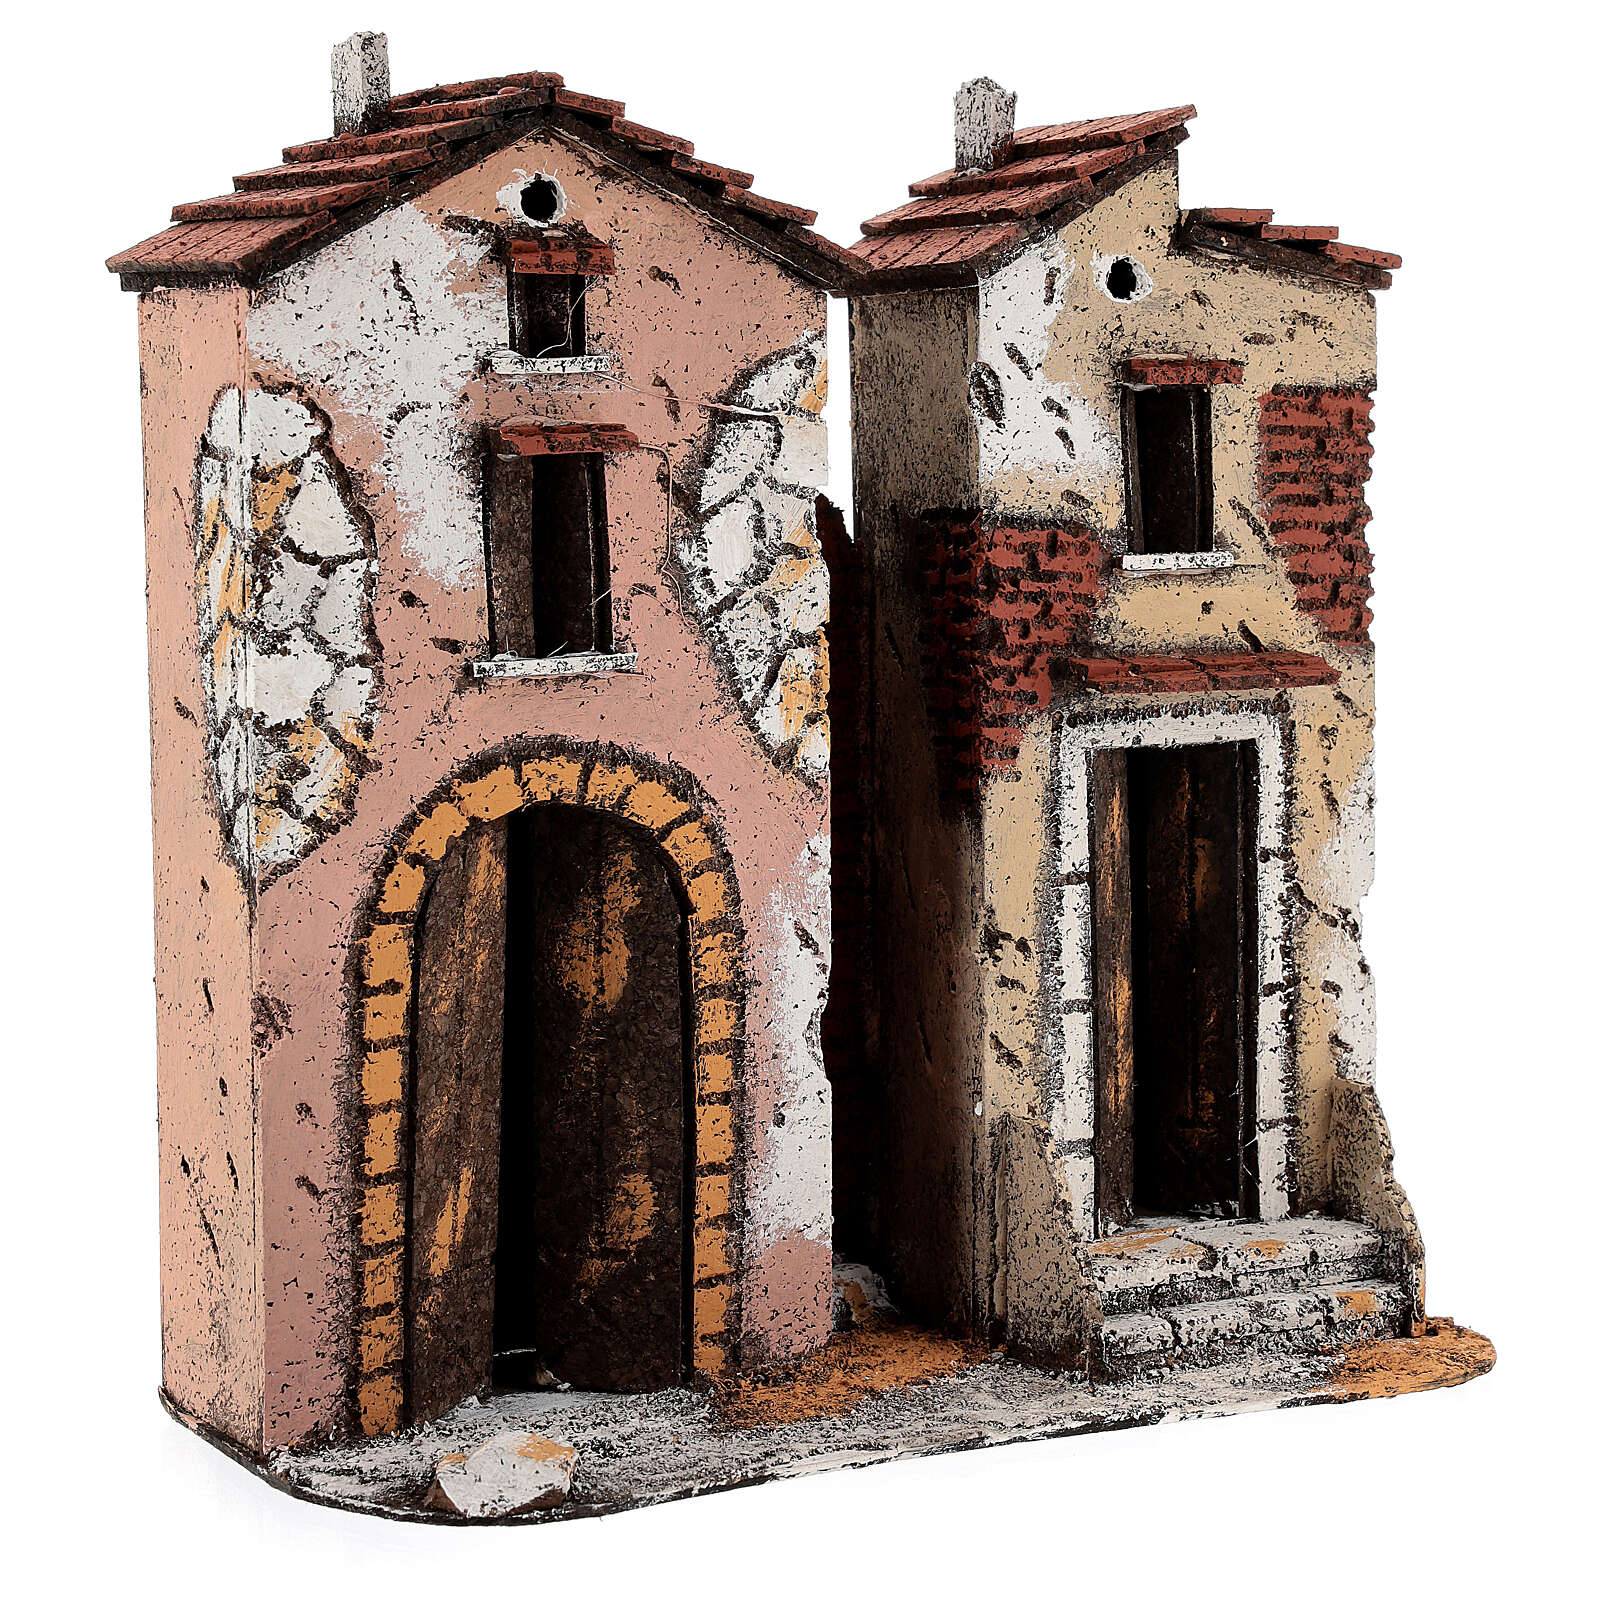 Pair of two-storey cork houses Neapolitan Nativity scene 25x25x10 for statues 10 cm 4